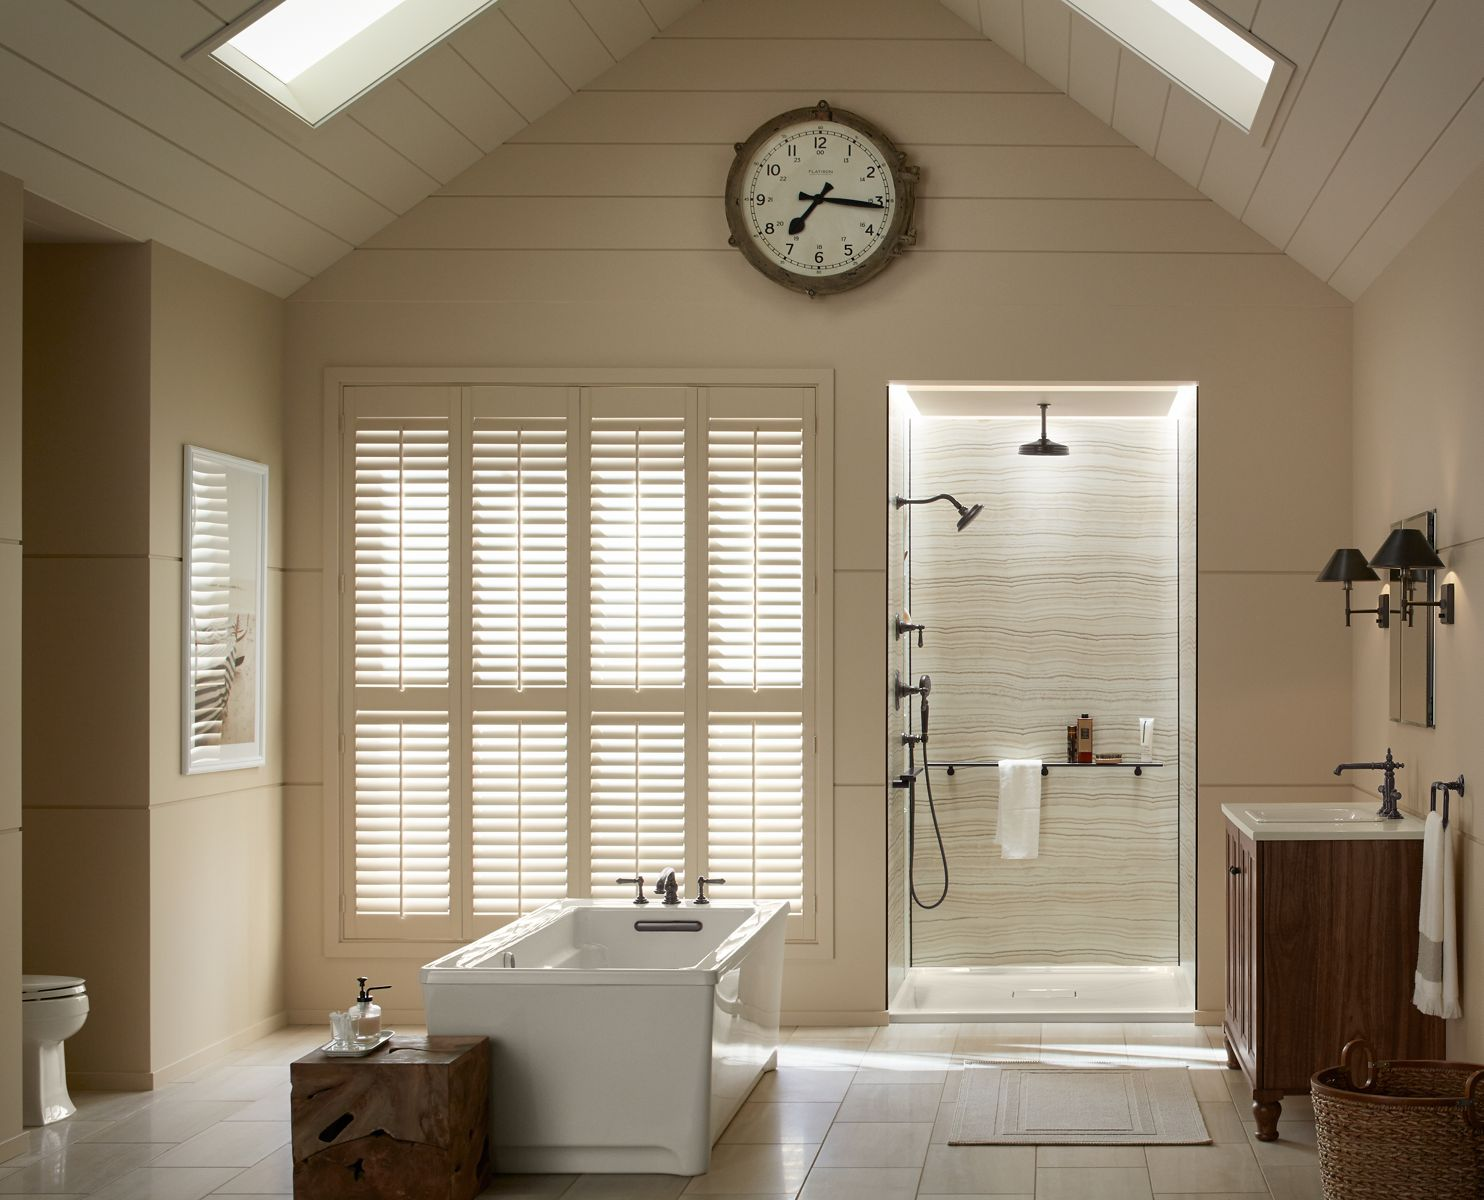 Easily Organize Your Shower While Creating A Space Designed Around You.  Every Detail Has Been